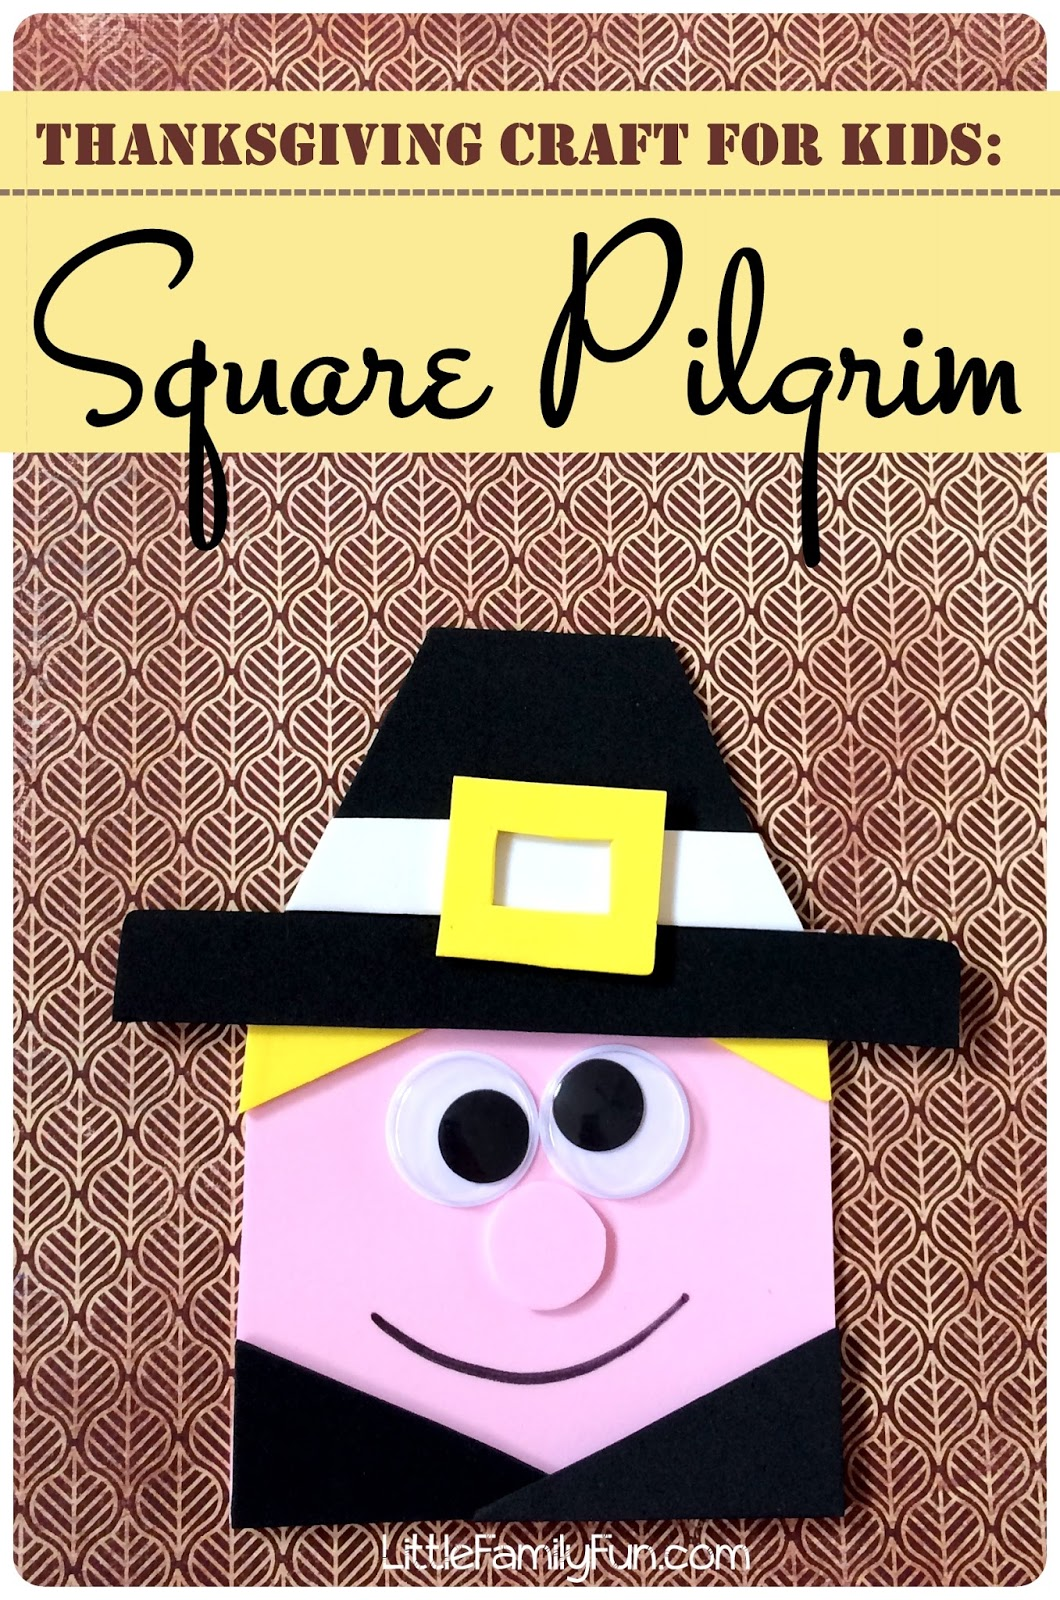 Square Pilgrim Craft